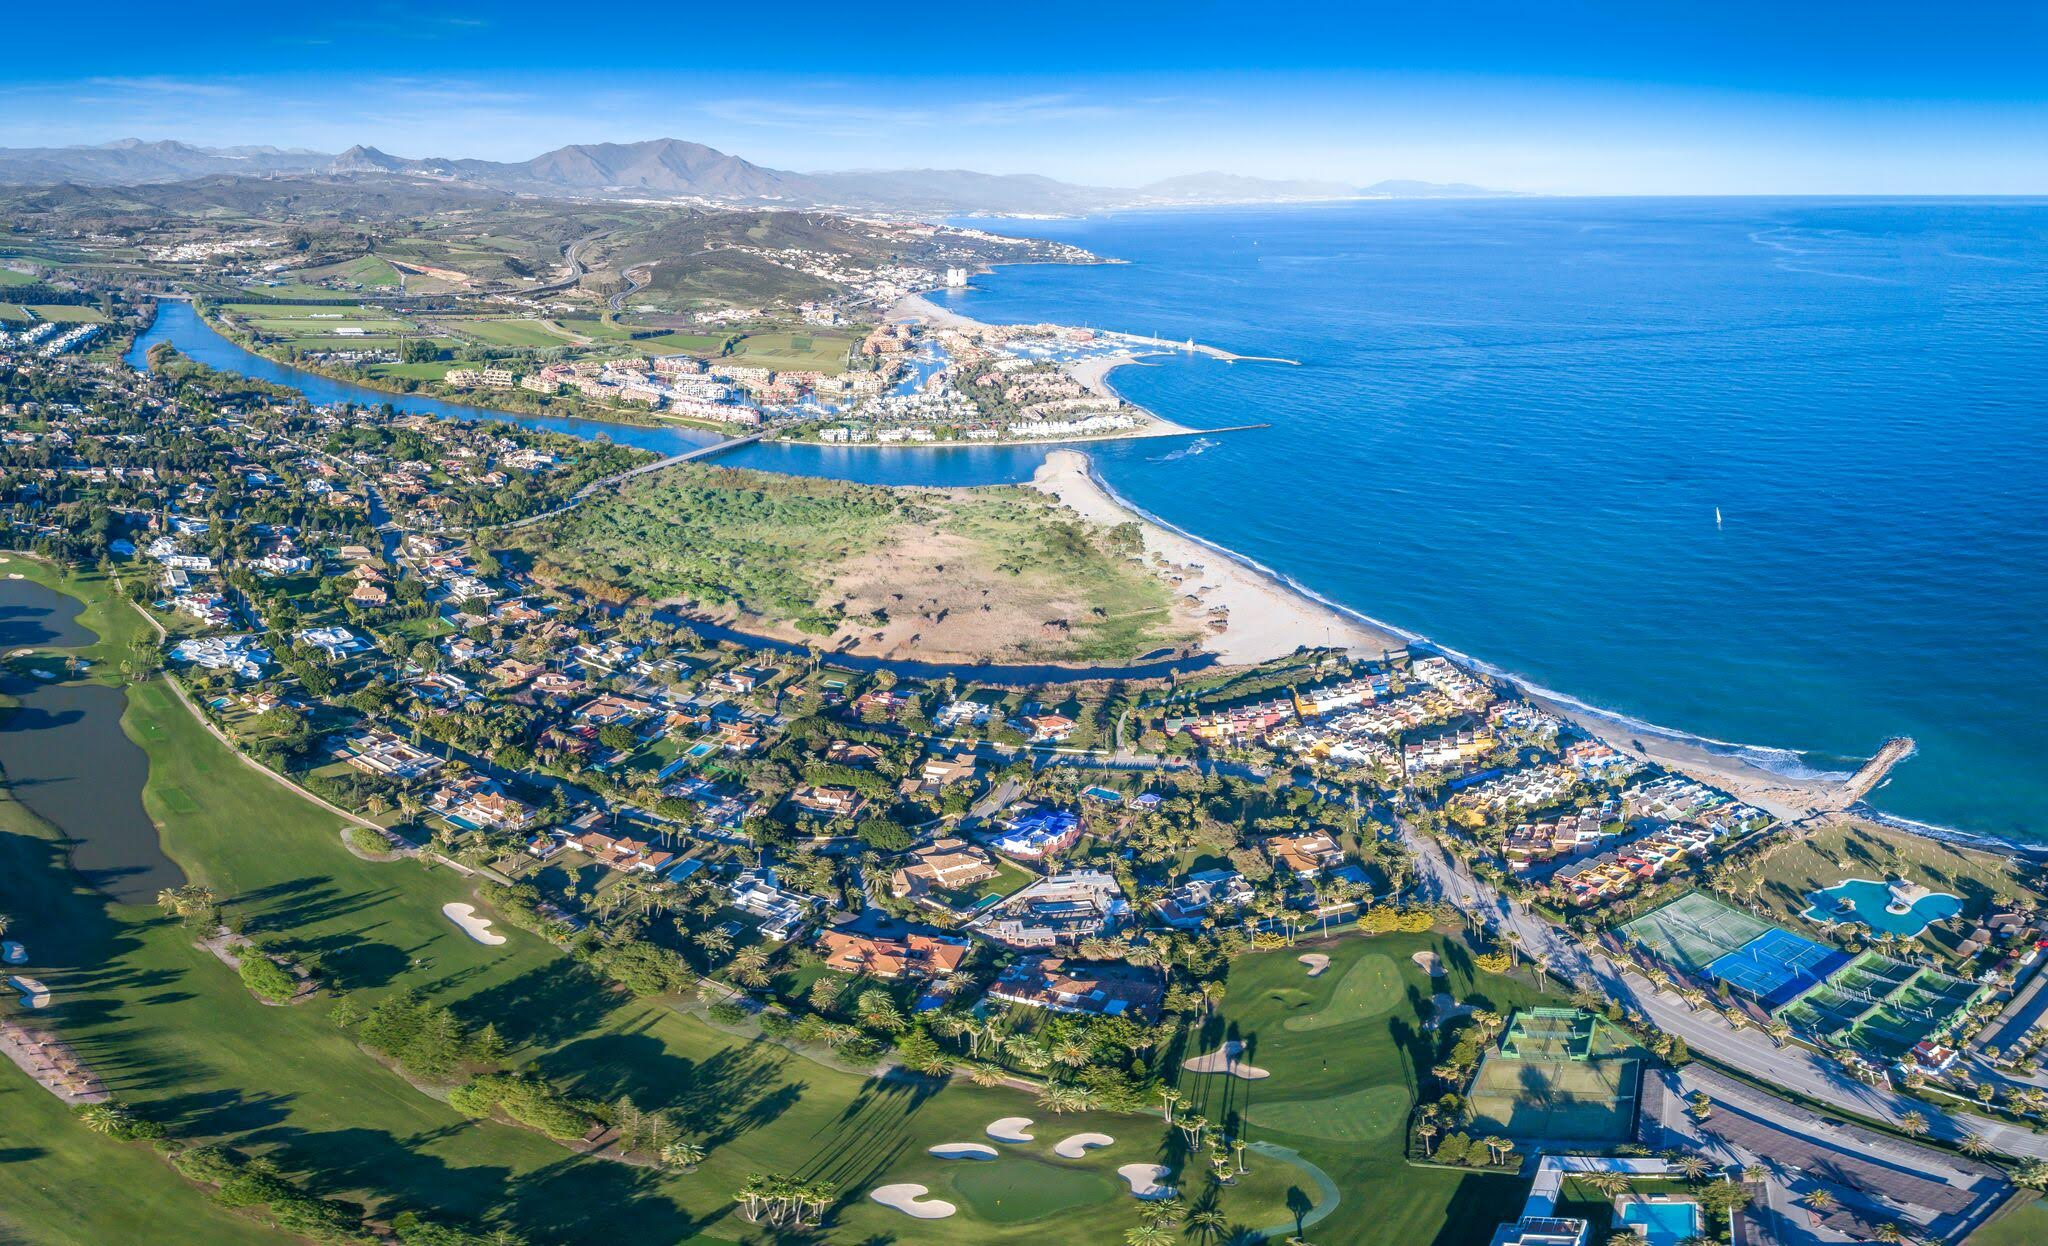 ABOUT SOTOGRANDE